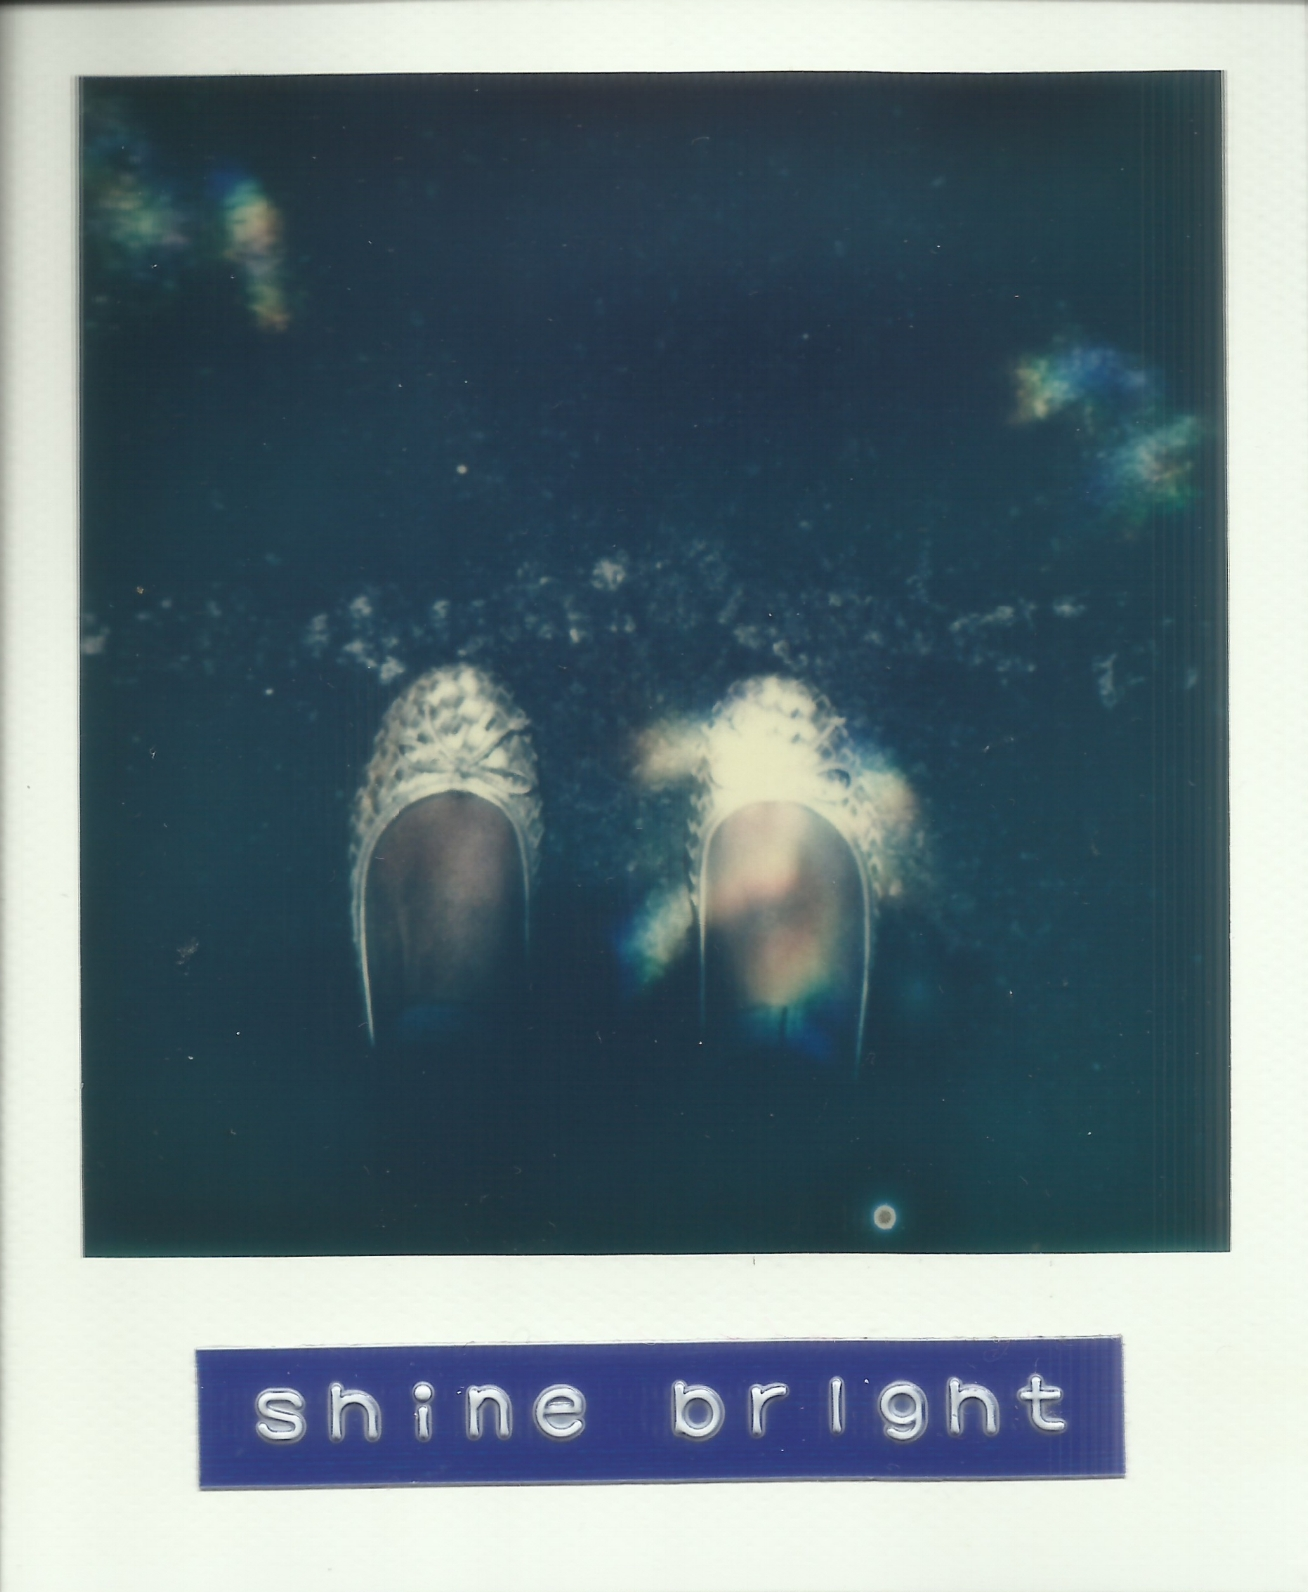 Shine Bright Polaroid